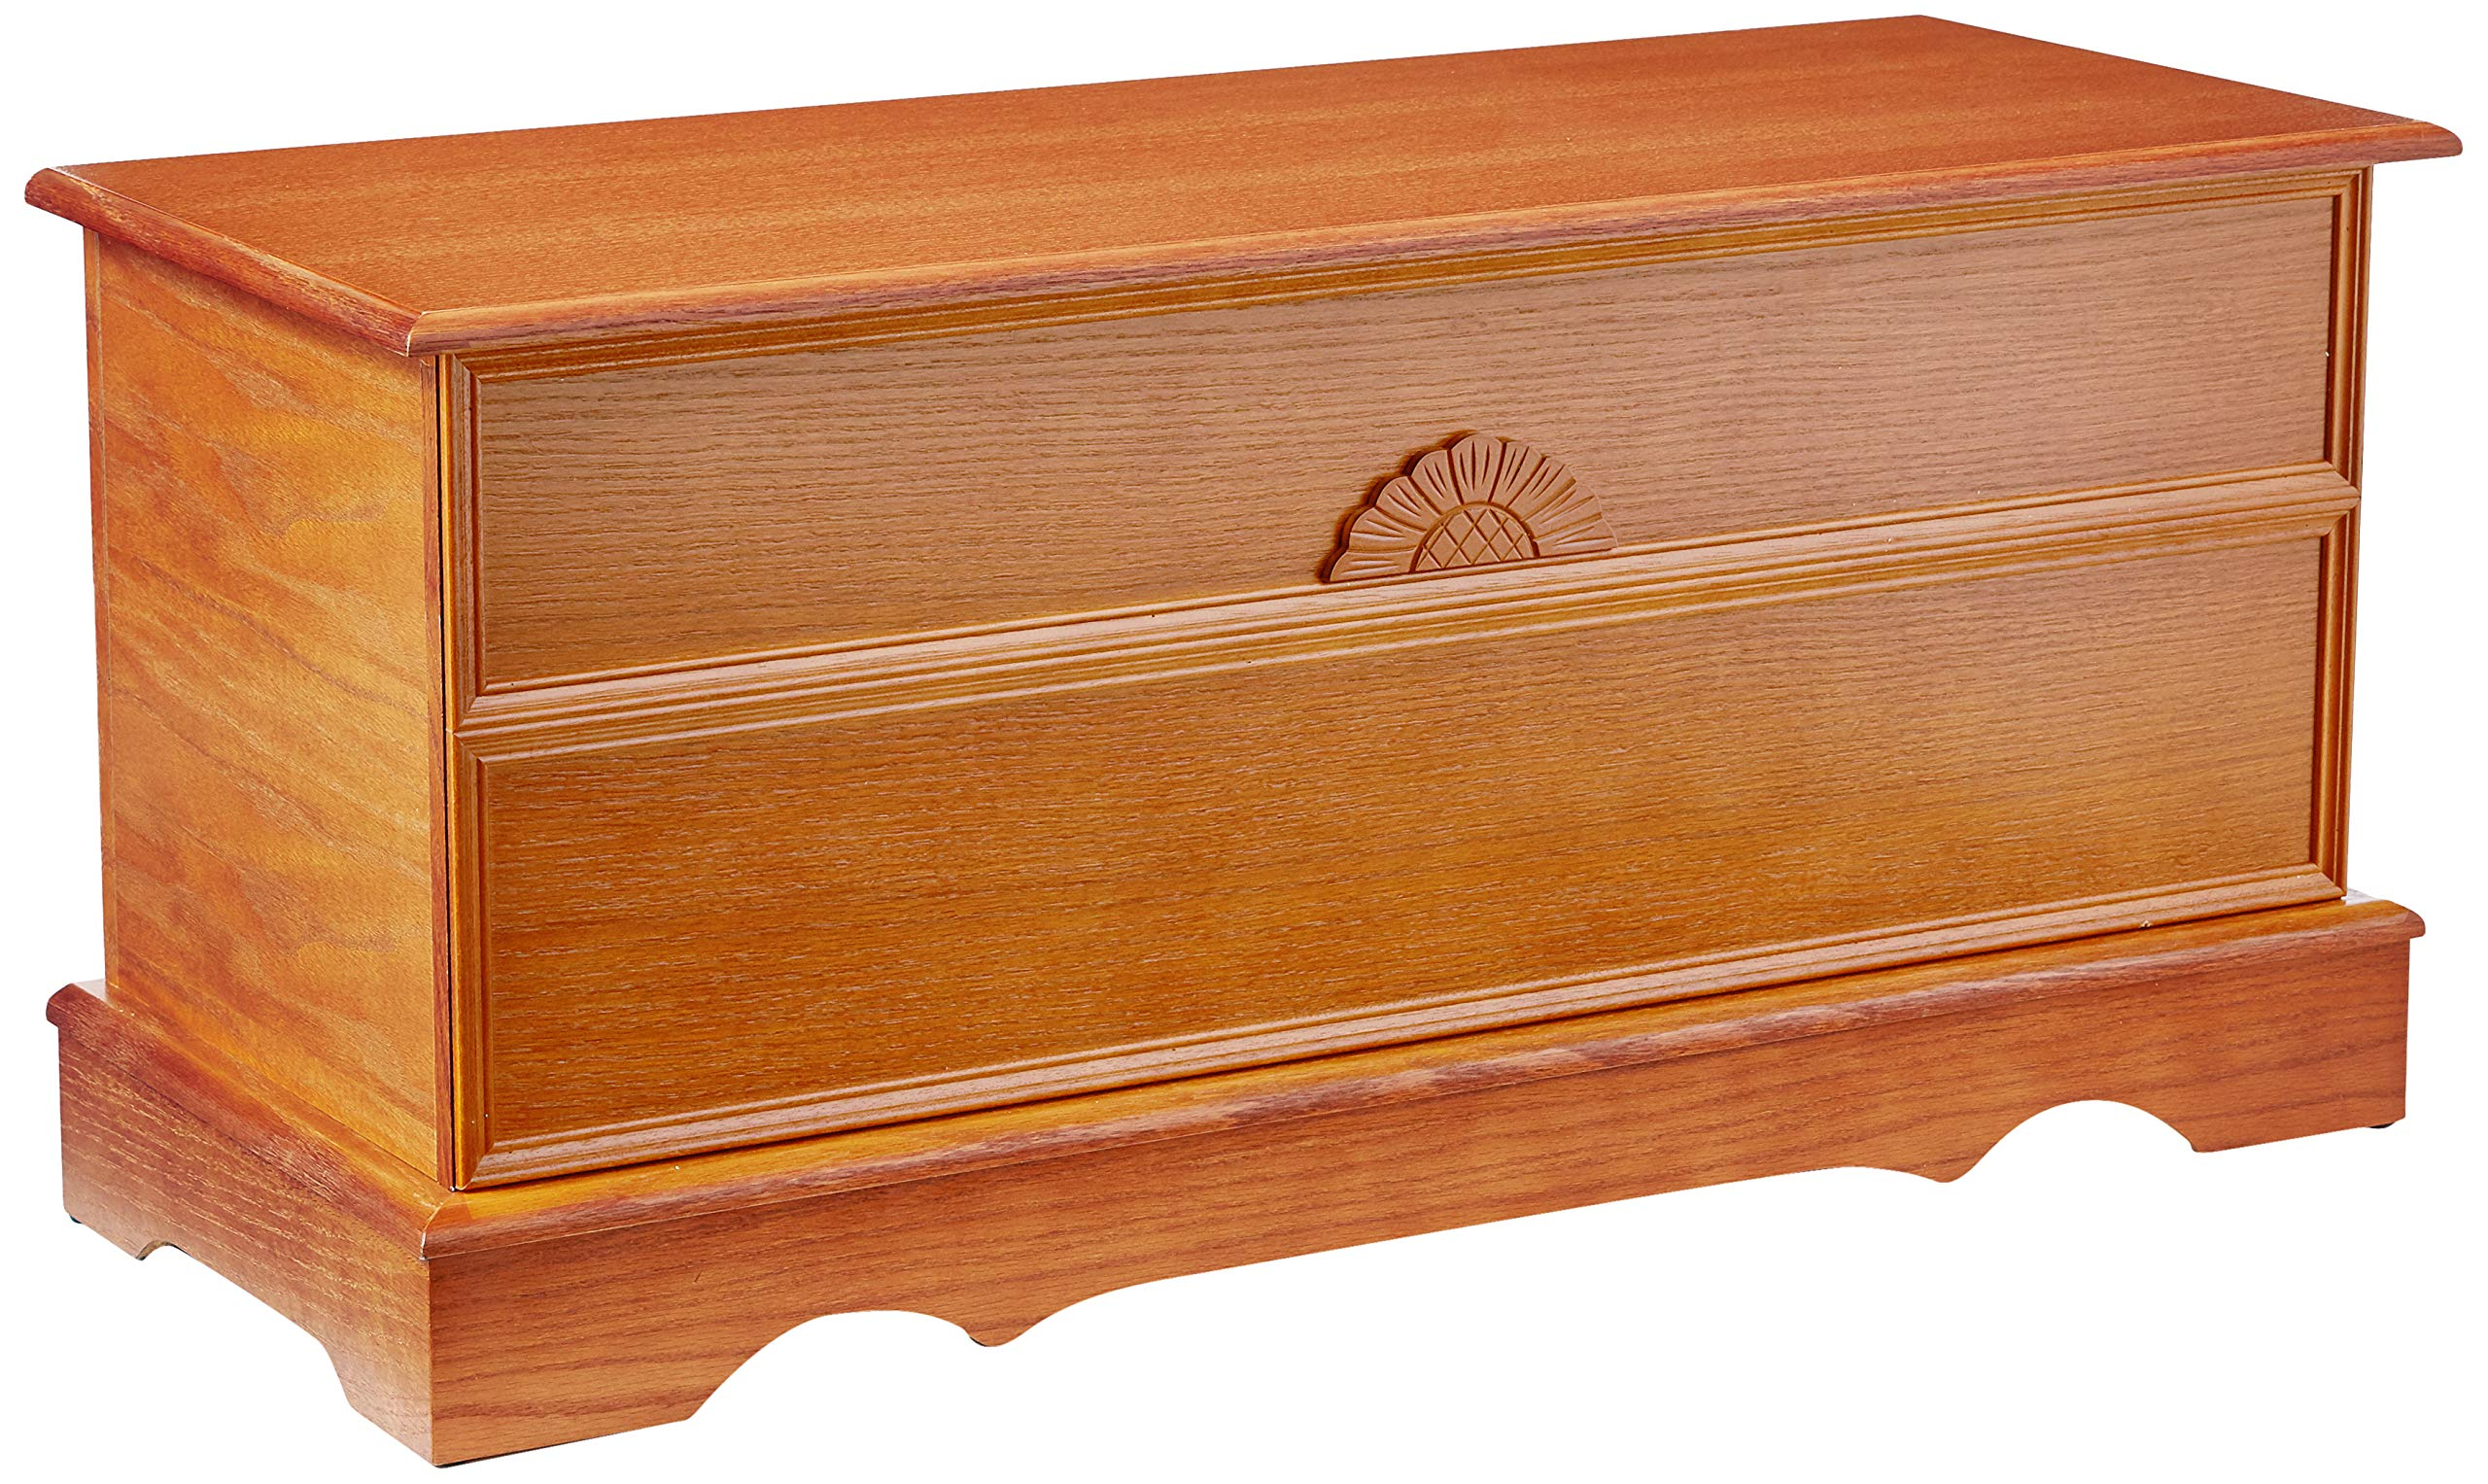 Coaster Home Furnishings Cedar Chest in Honey by Coaster Home Furnishings